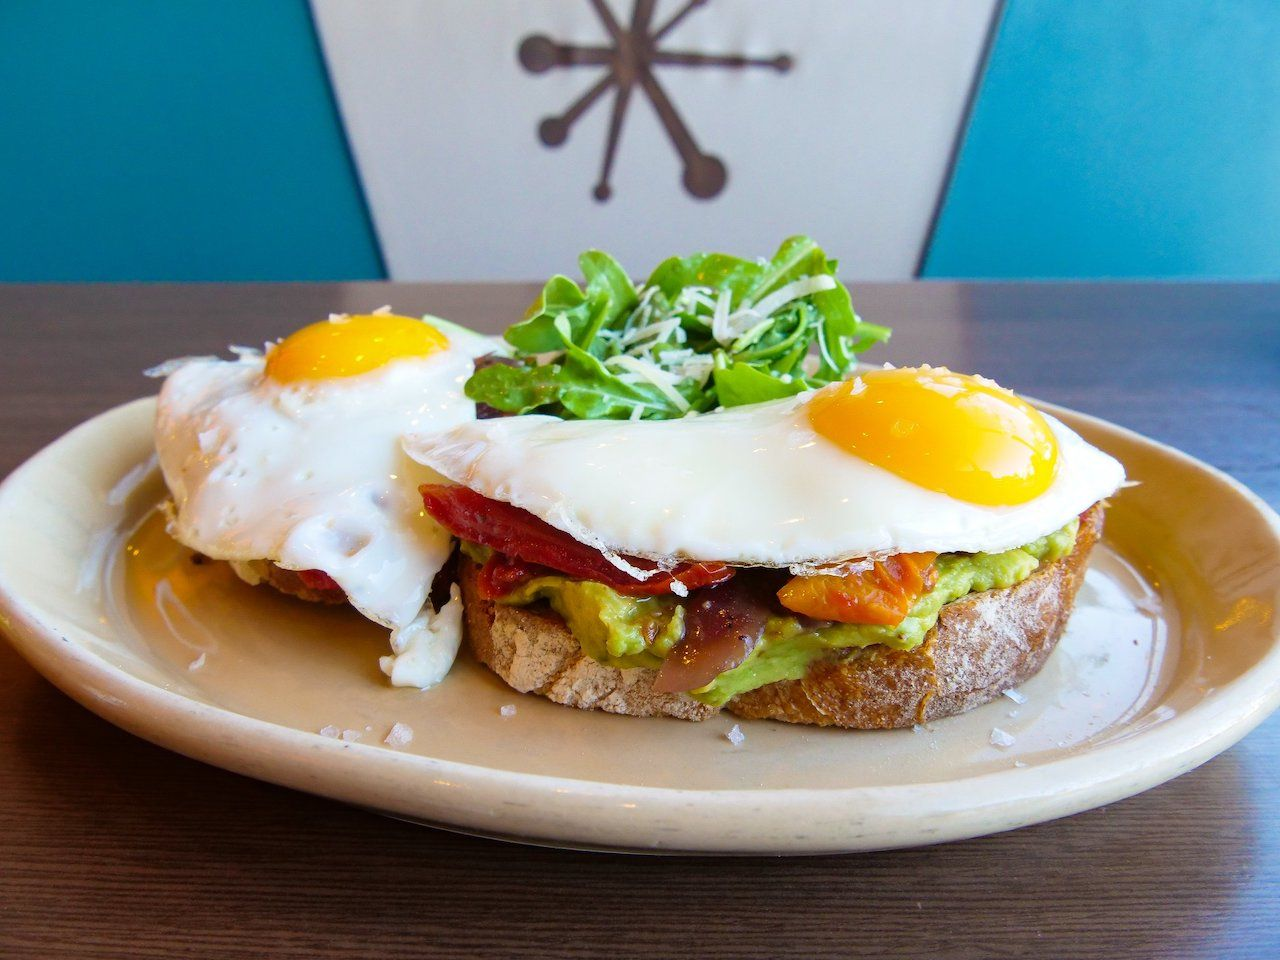 Avocado toast with eggs from Snooze in Denver, Colorado